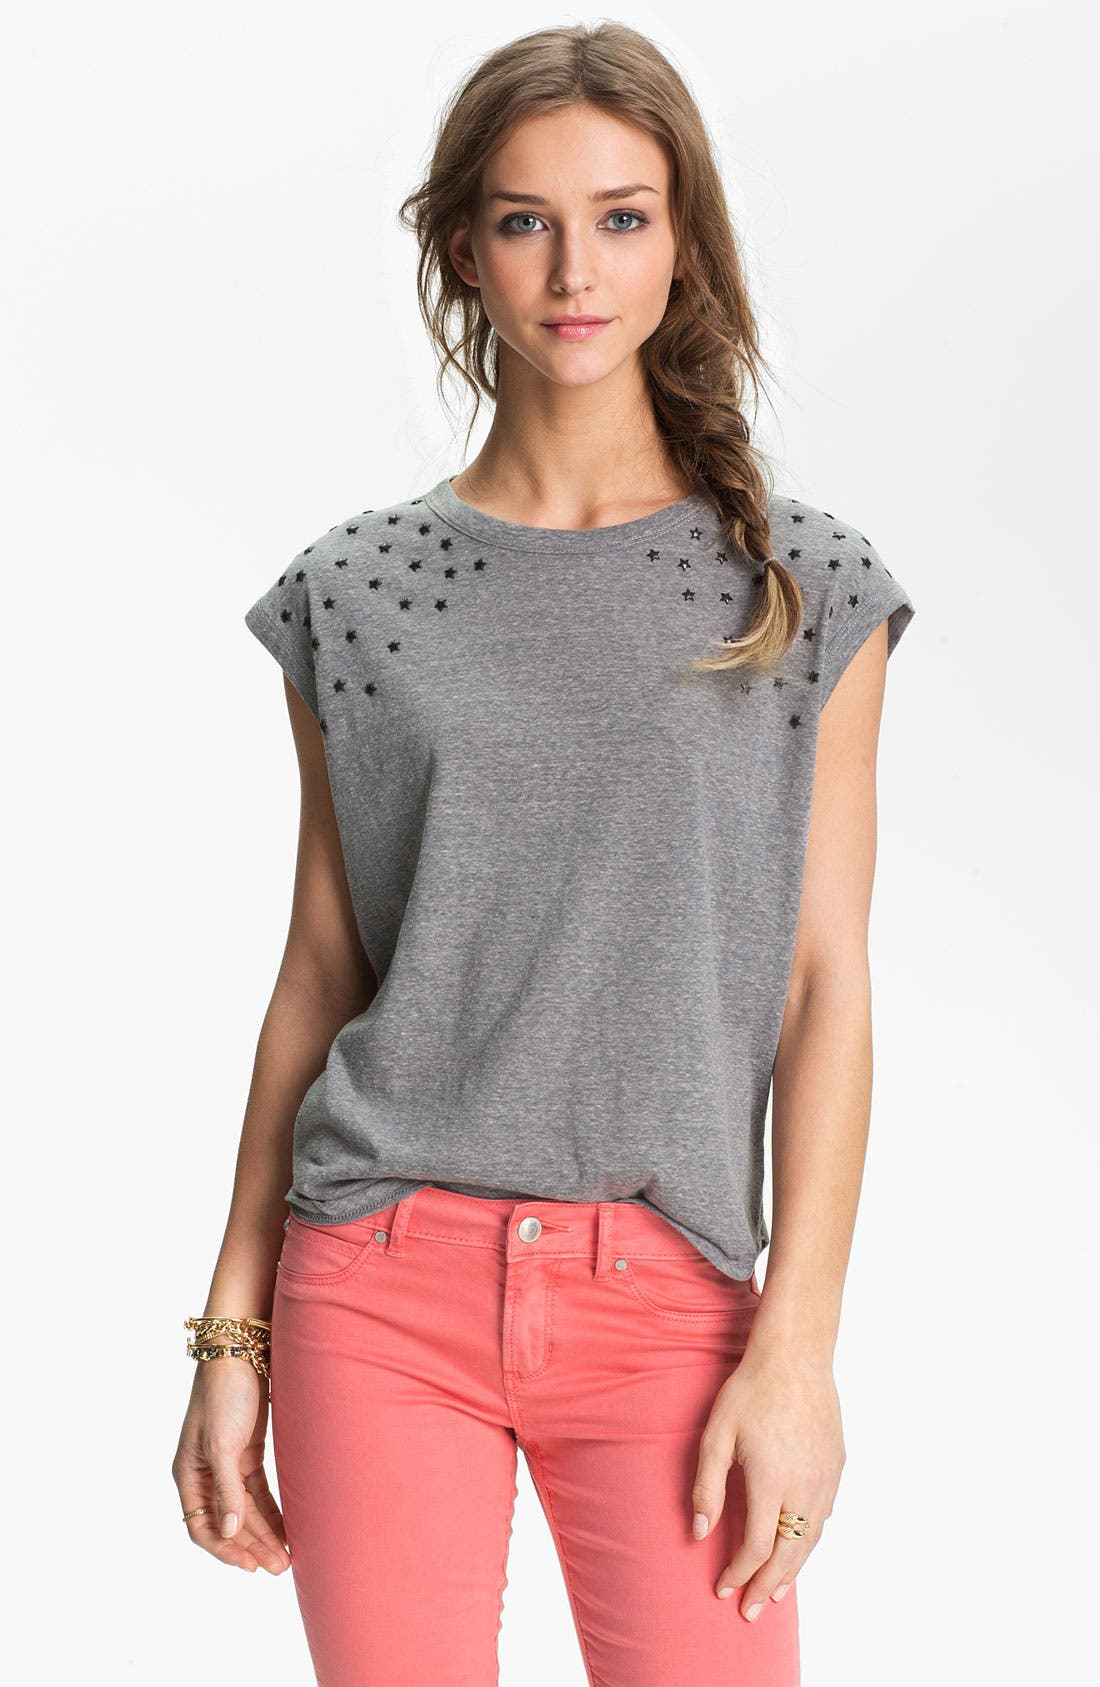 Alternate Image 1 Selected - Elodie® Star Stud Muscle Tee (Juniors)